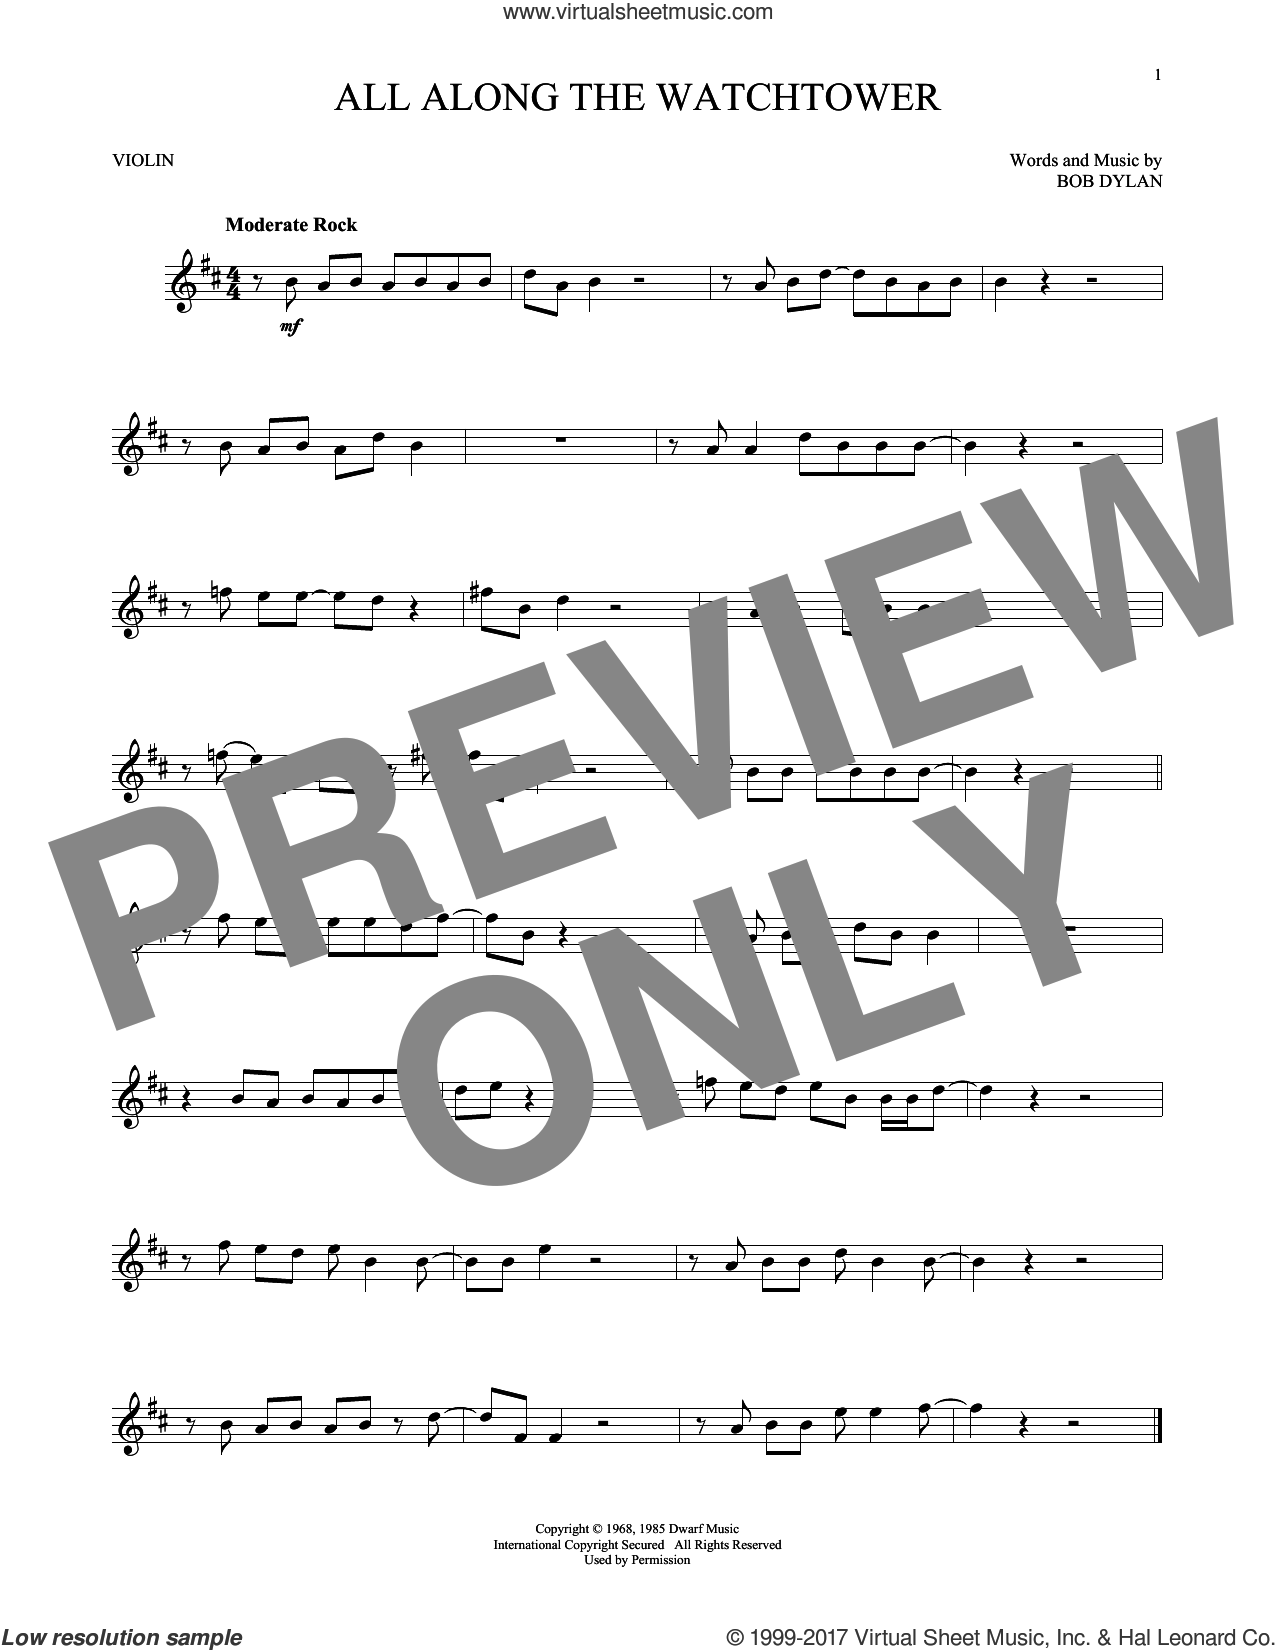 All Along The Watchtower sheet music for violin solo by Bob Dylan, intermediate skill level